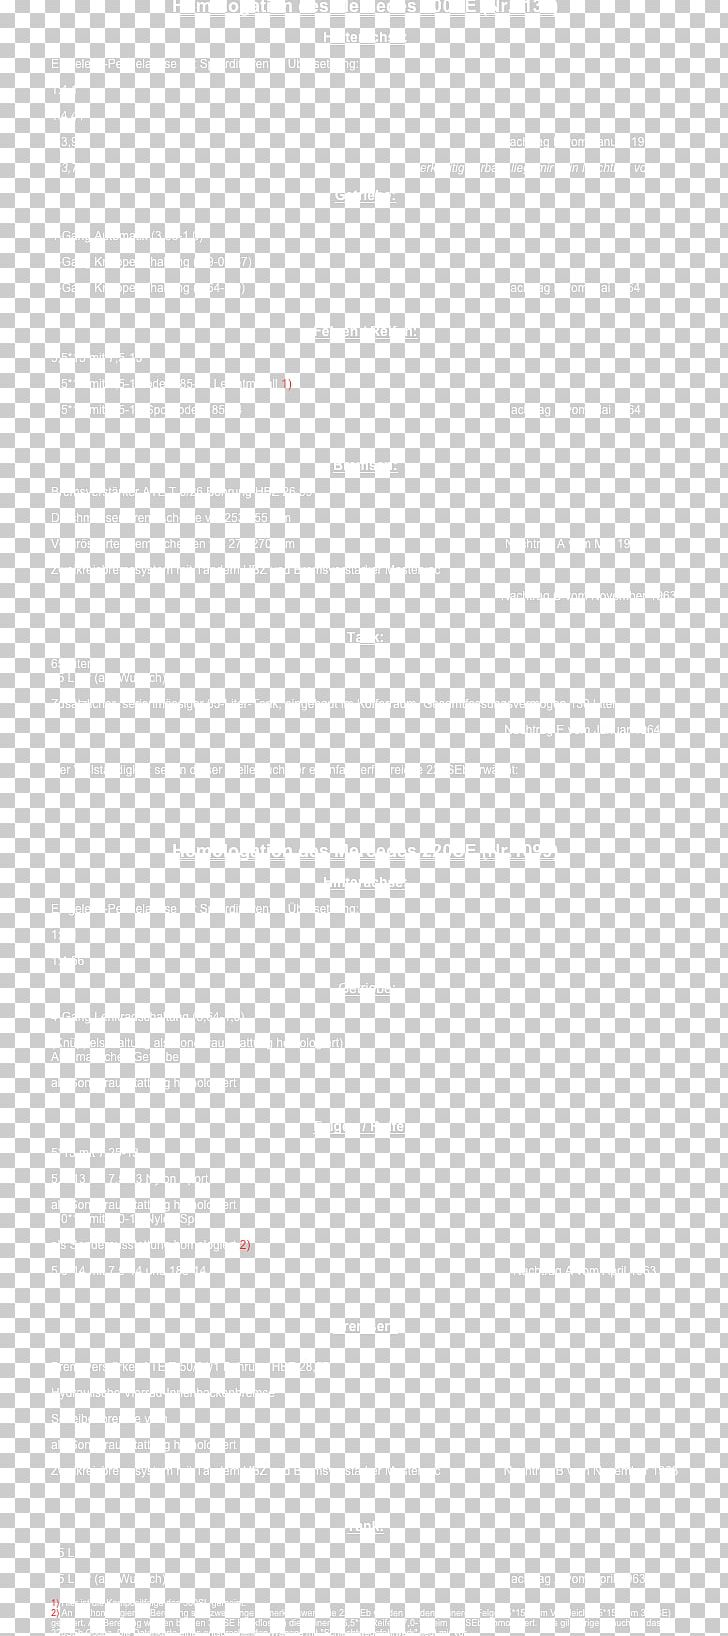 Desktop Point Angle PNG, Clipart, Angle, Area, Black, Circle, Computer Free PNG Download